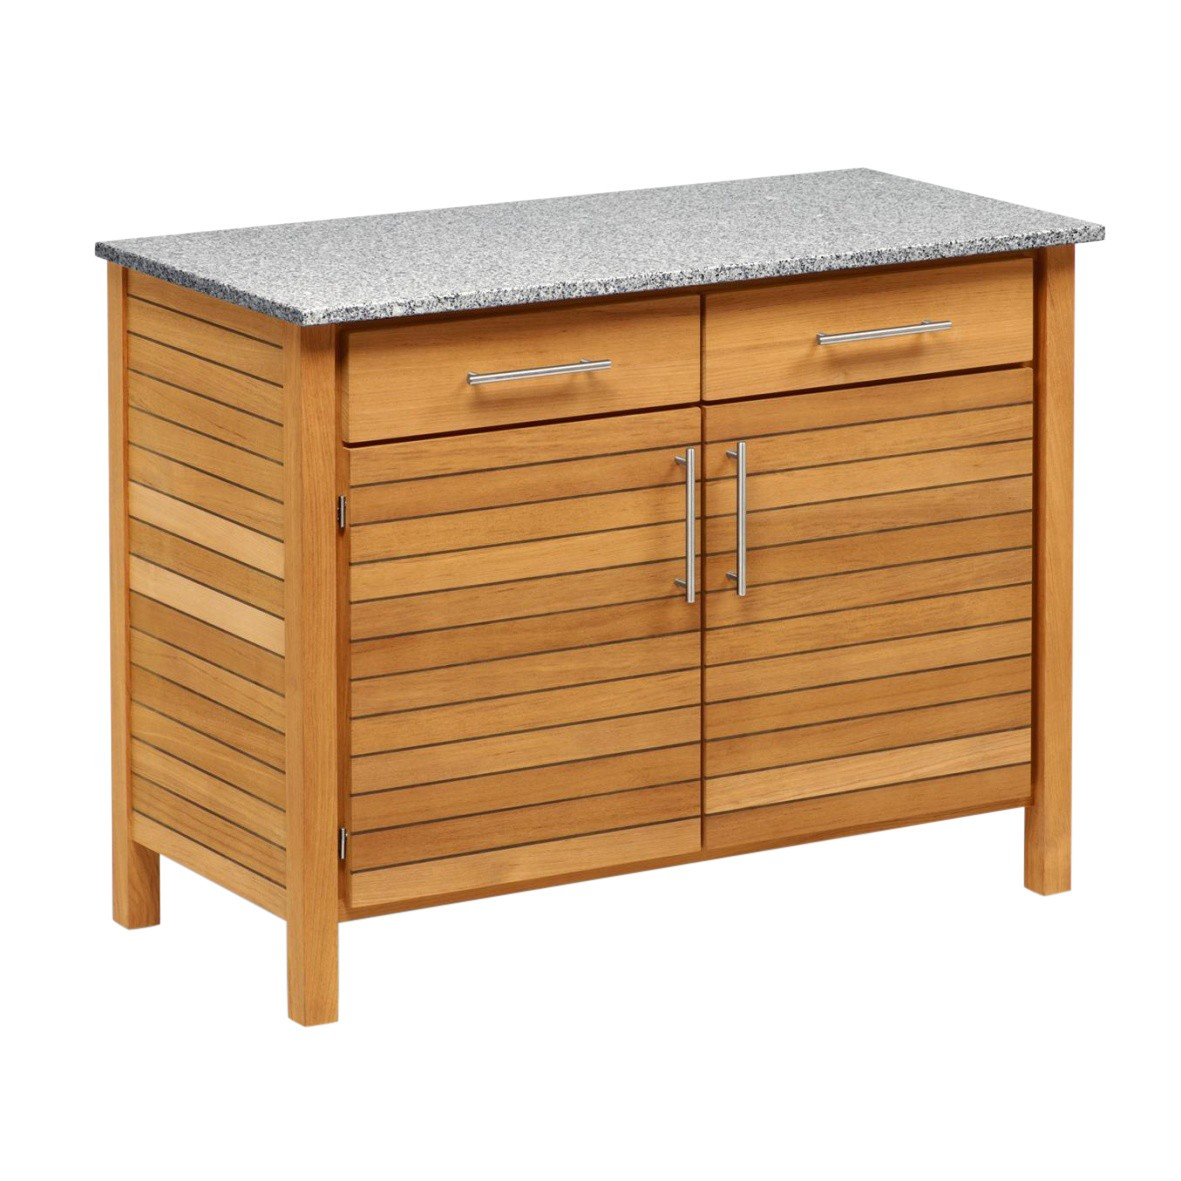 Rückwand Schrank Material Deck Outdoorkitchen Double Board